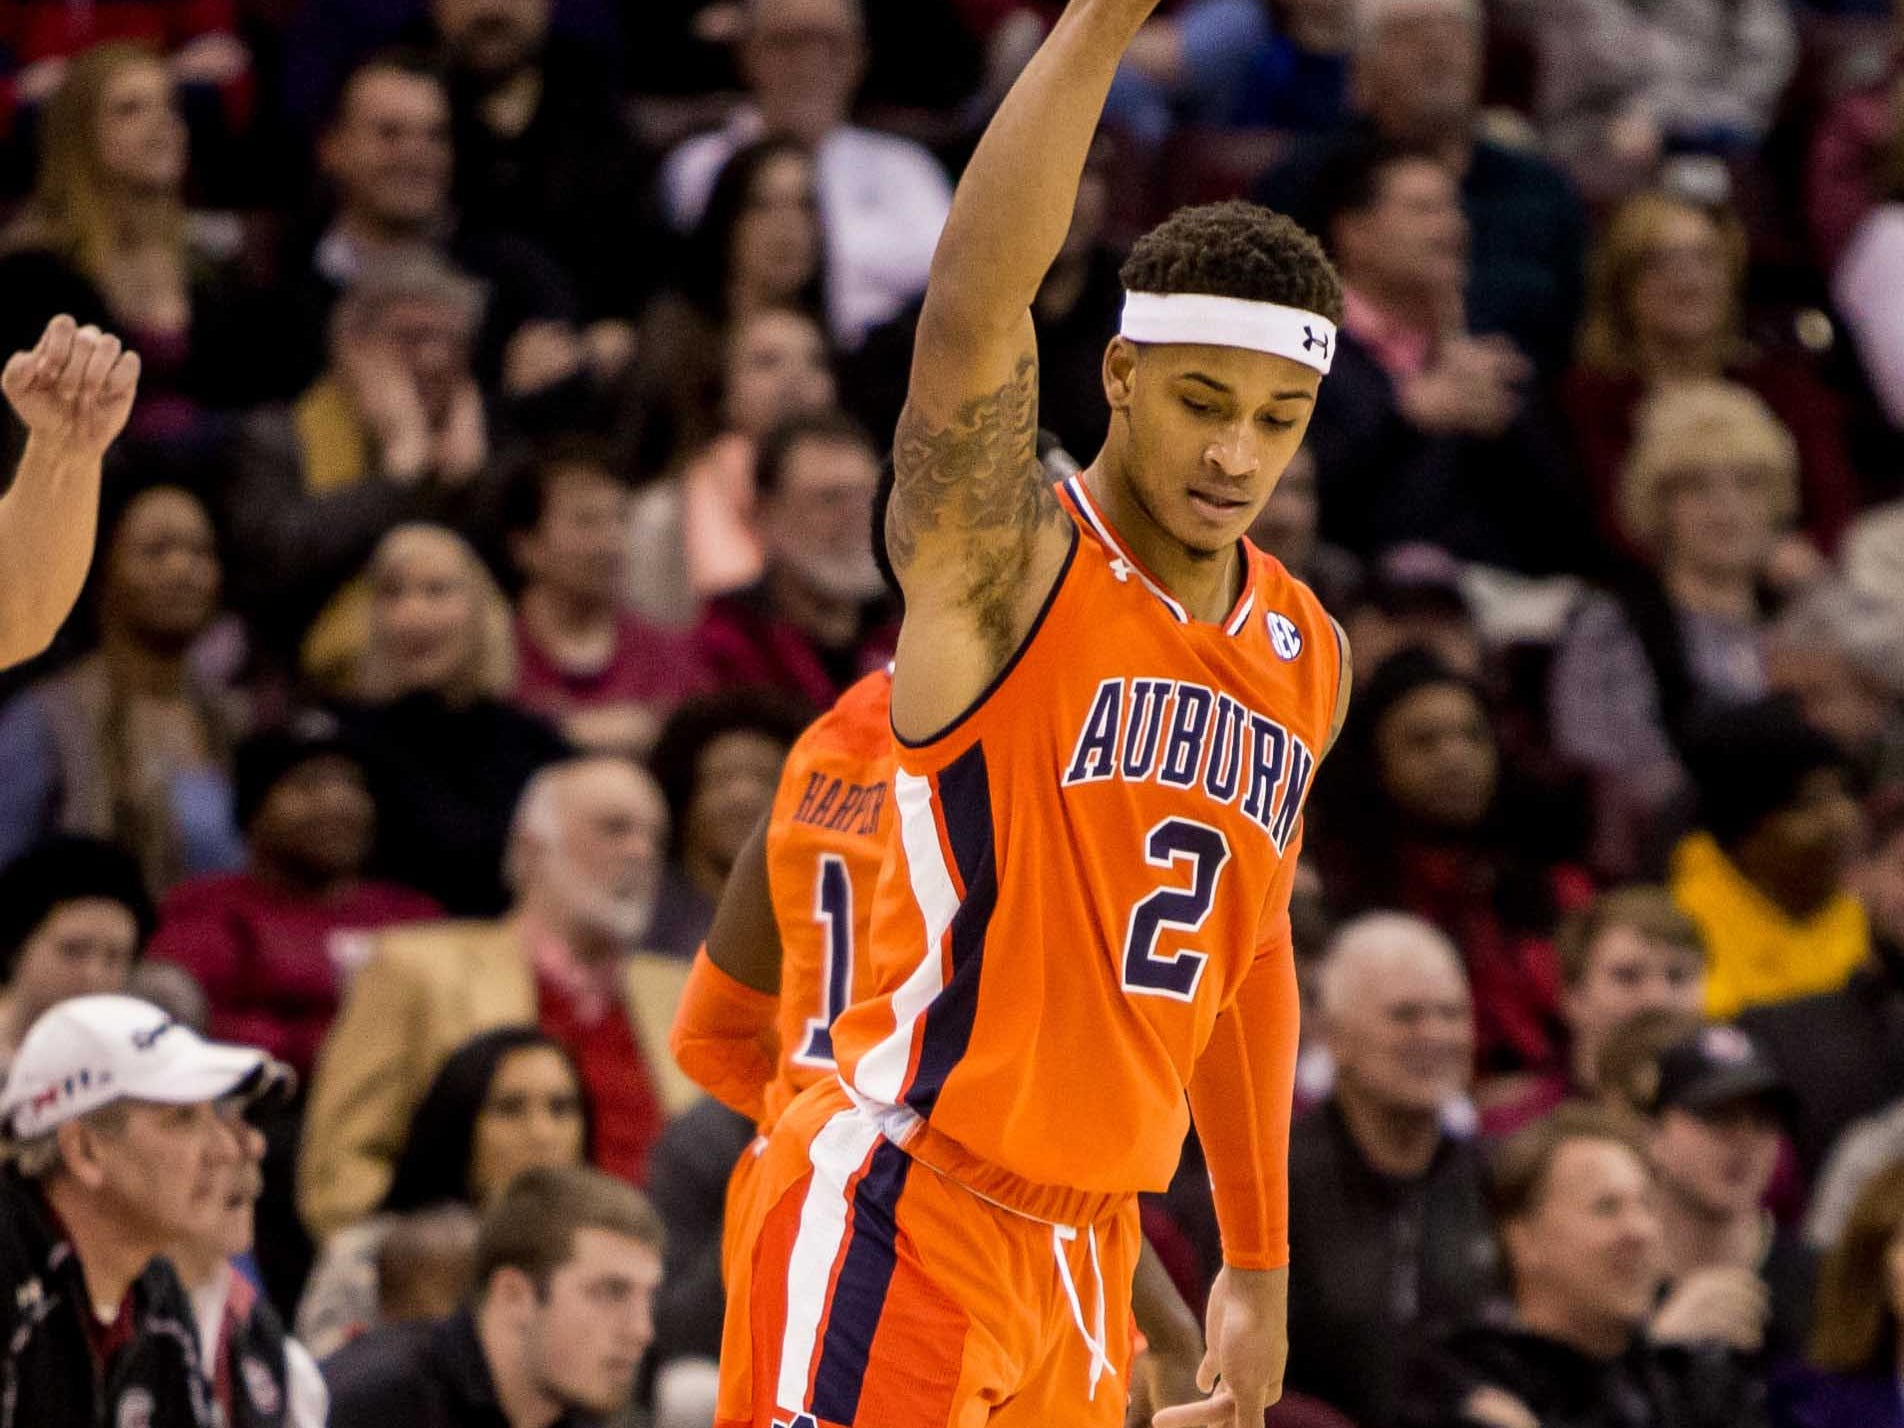 Jan 22, 2019; Columbia, SC, USA; Auburn Tigers guard Bryce Brown (2) celebrates a three pointer against the South Carolina Gamecocks in the first half at Colonial Life Arena. Mandatory Credit: Jeff Blake-USA TODAY Sports